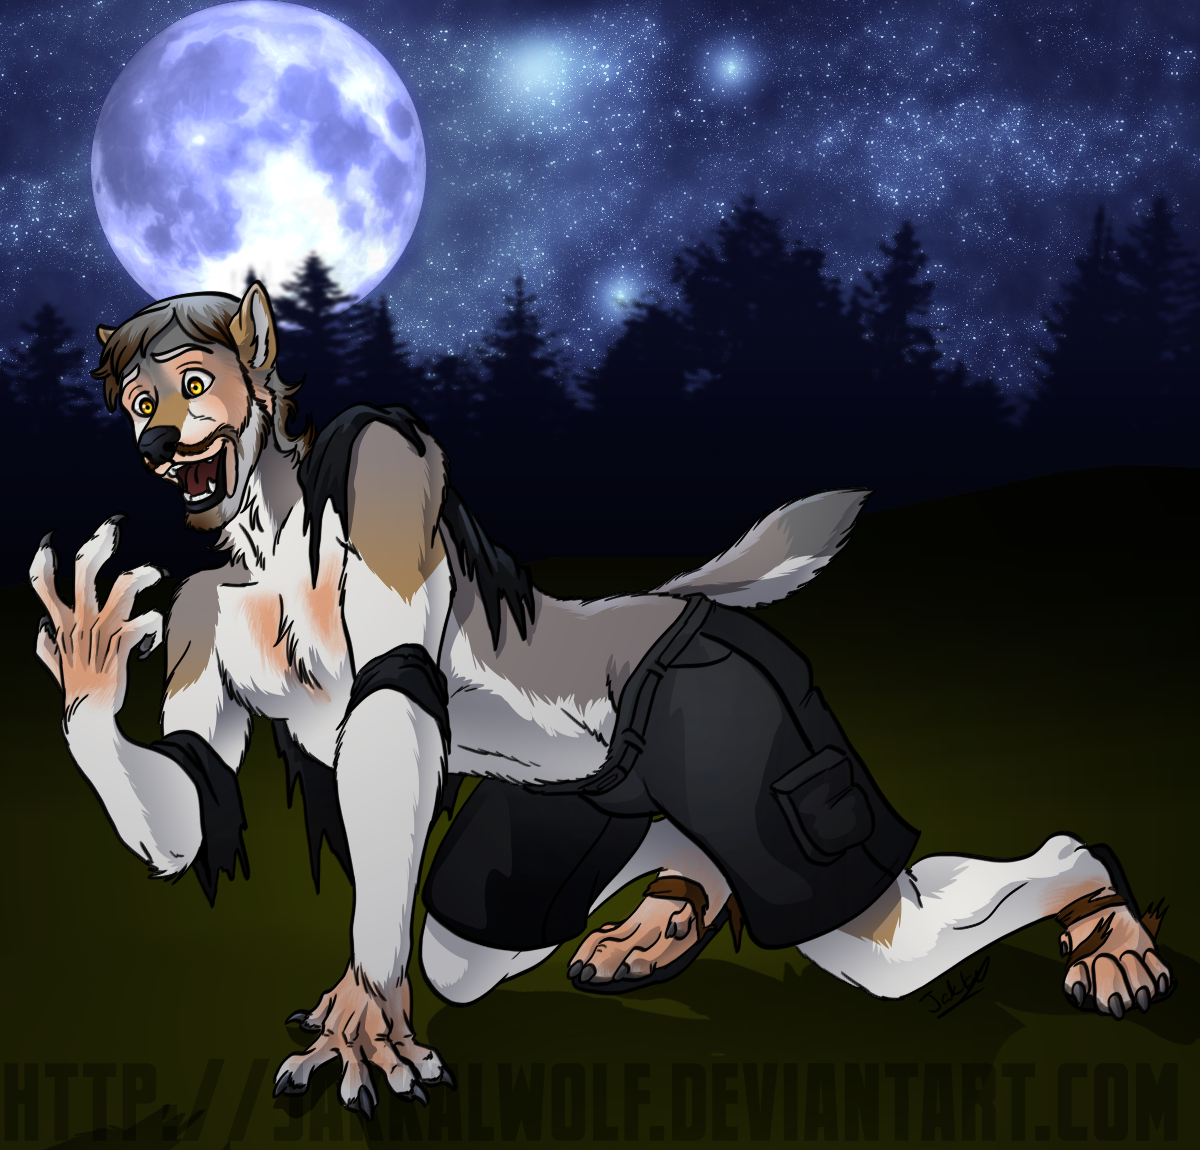 Taller Than Usual (Werewolf TF Transformation) by